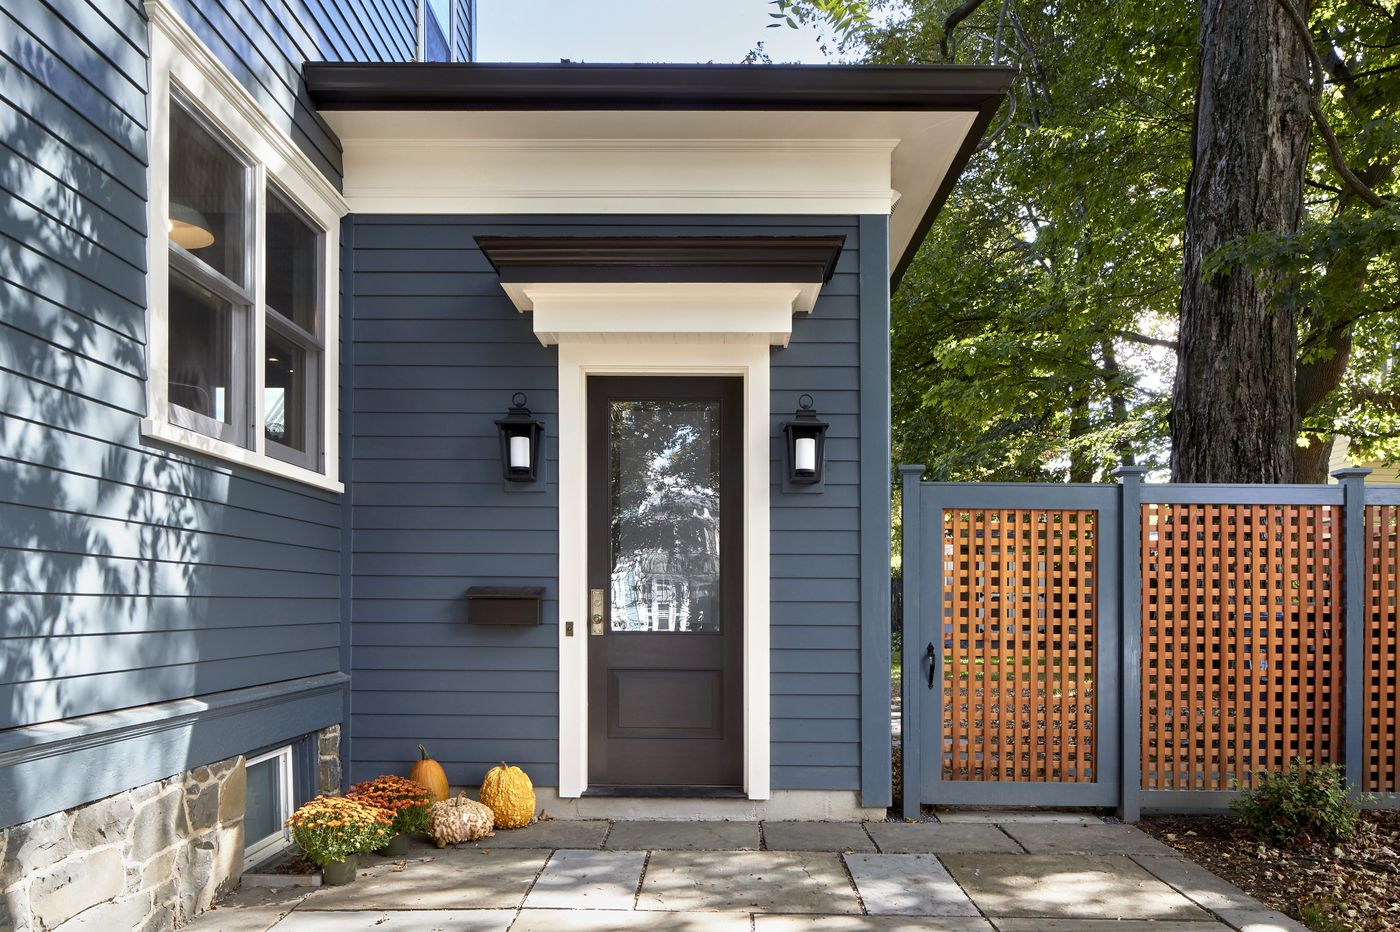 Seven mistakes to avoid when renovating older houses